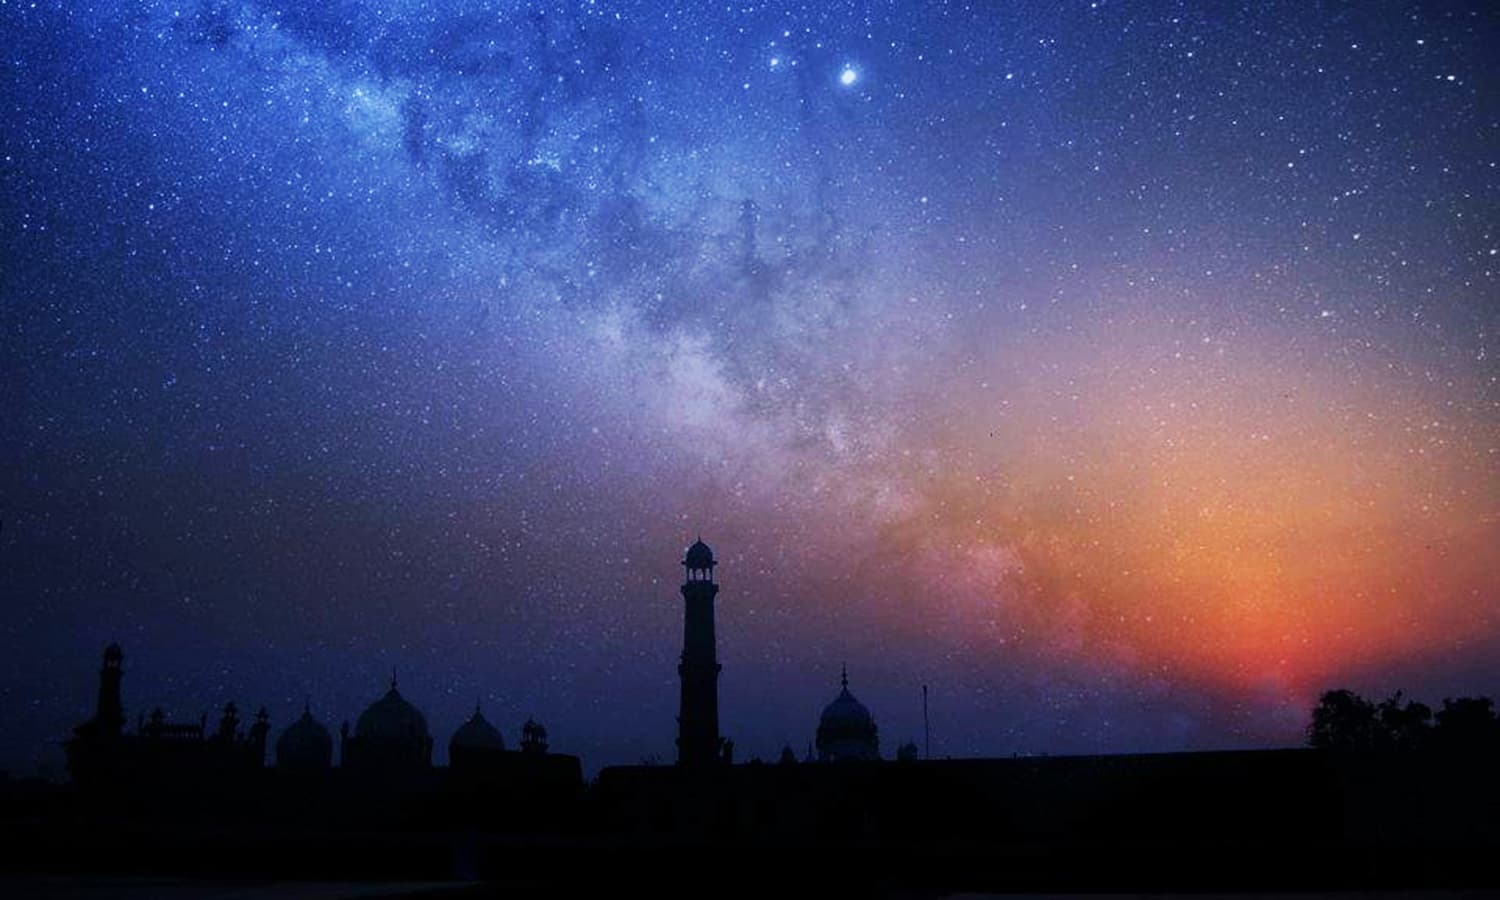 The milky way over Lahore. —Photo by Akhtar Abbas